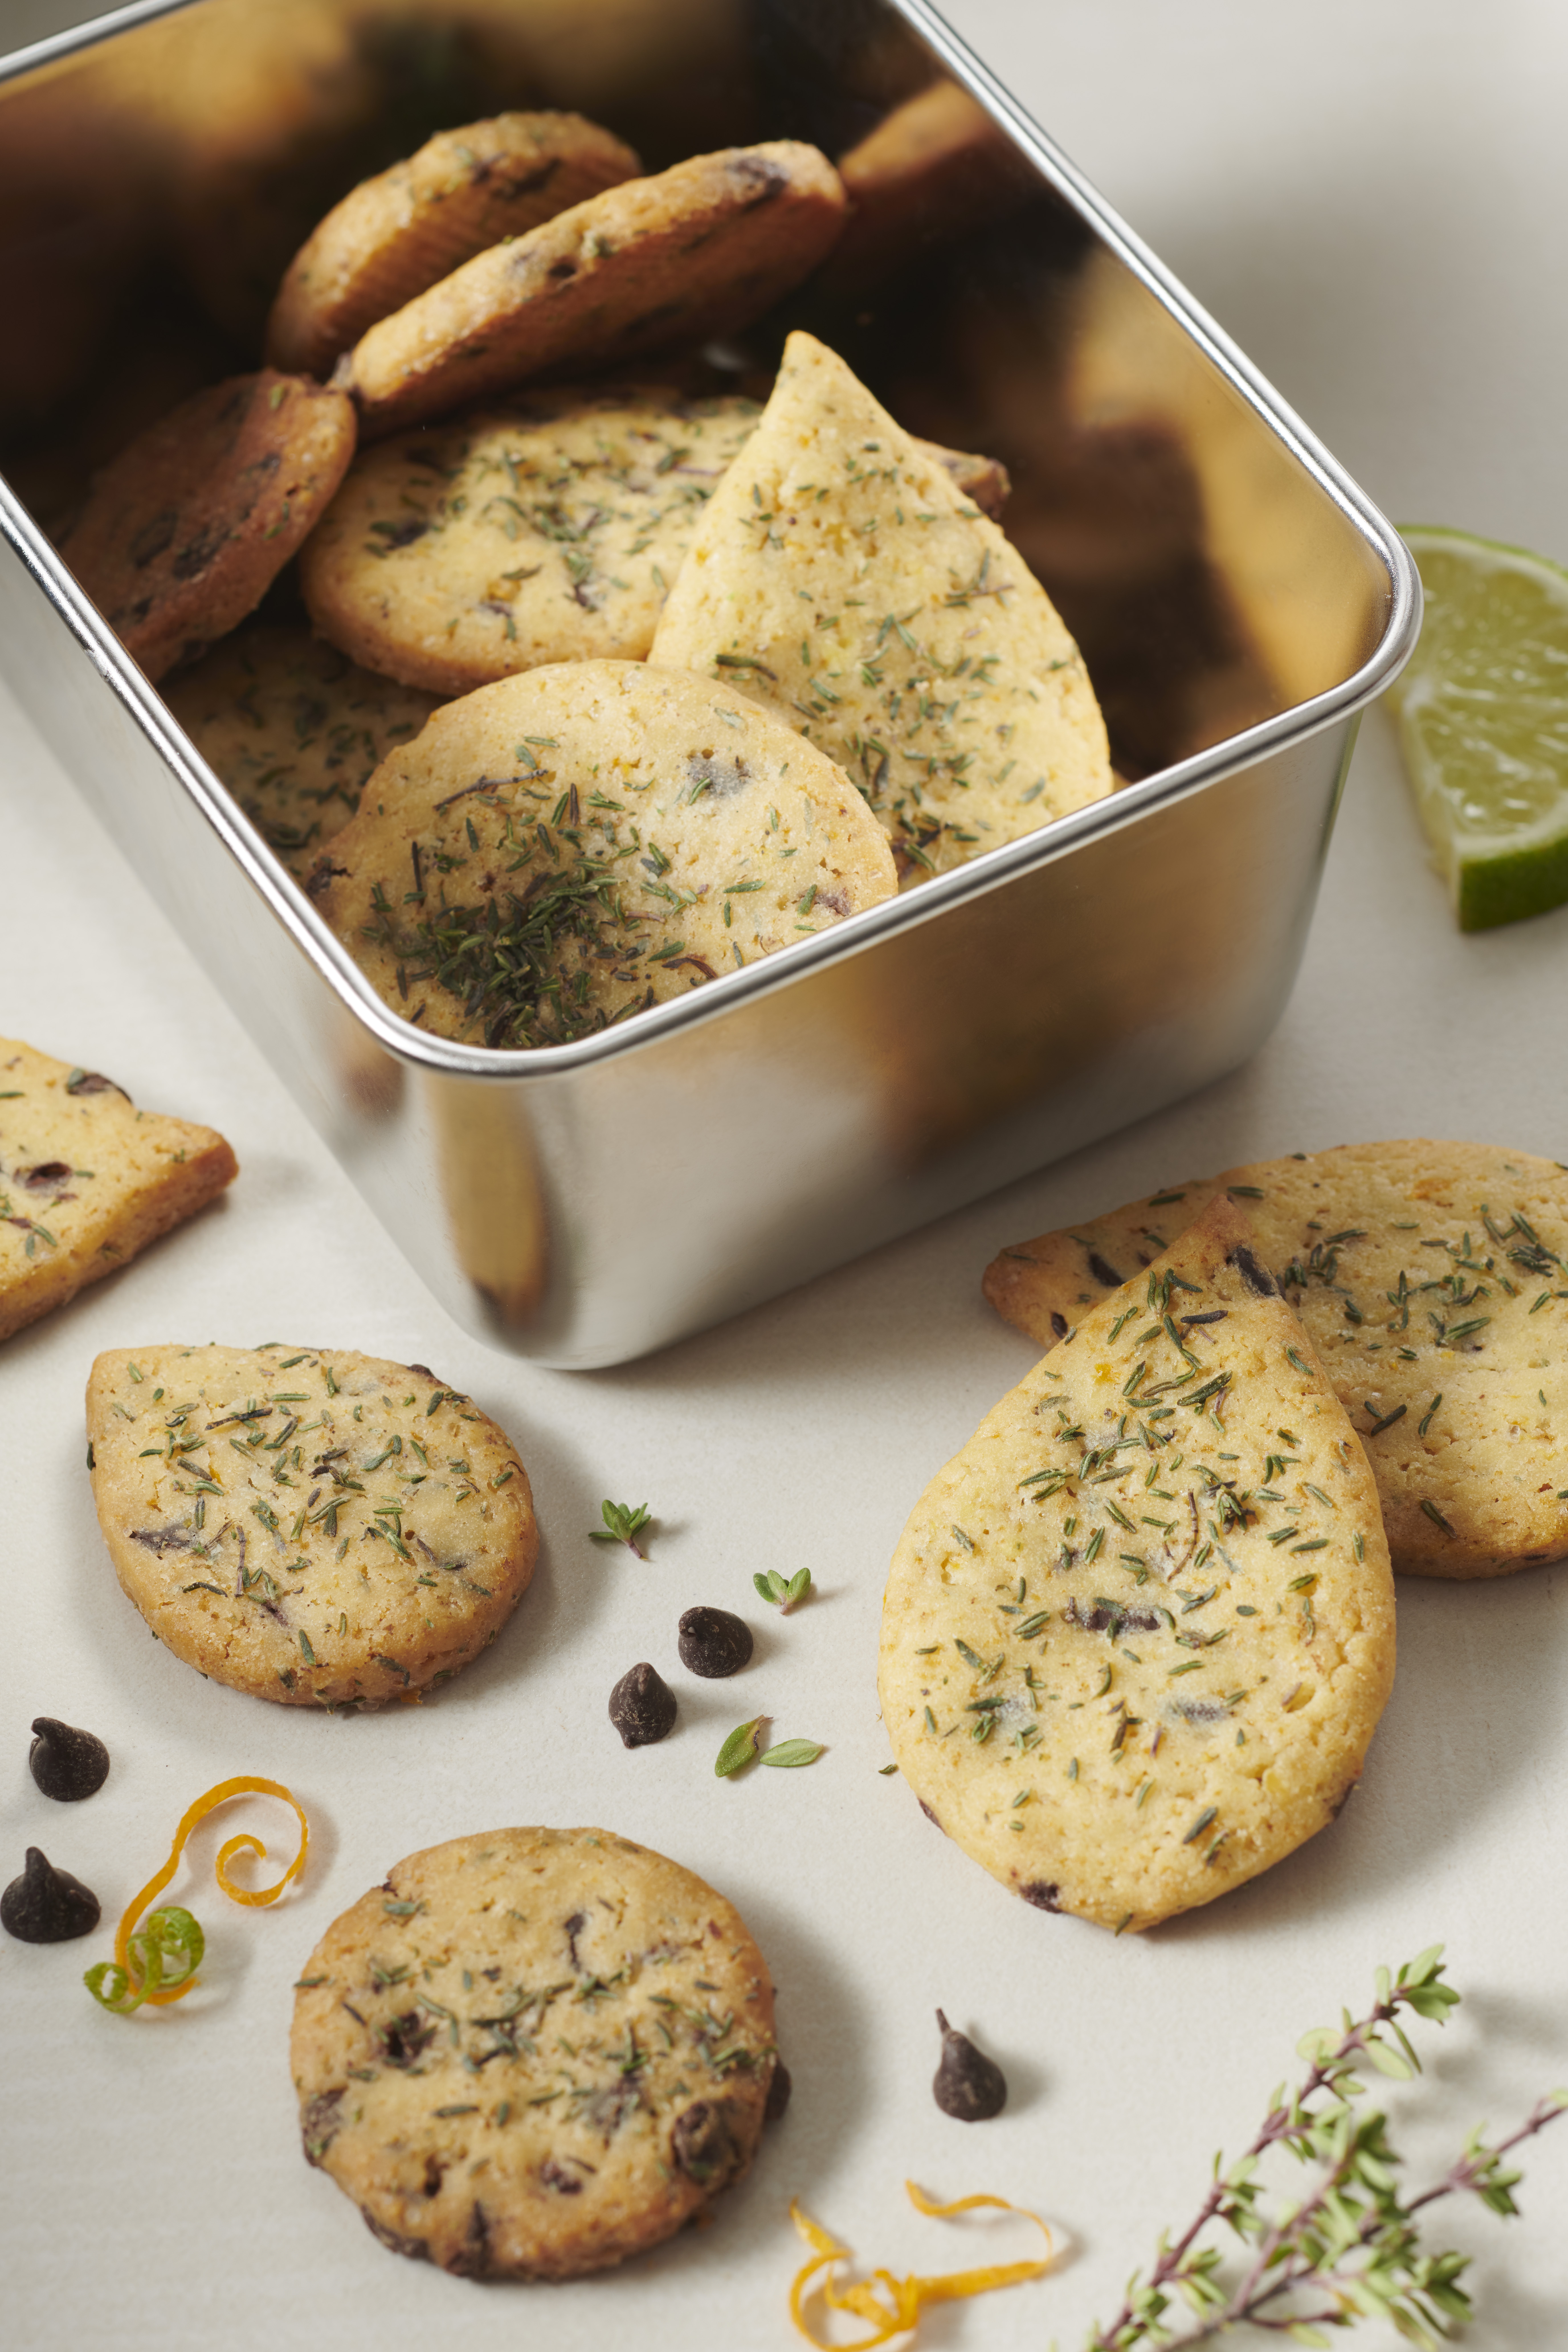 Citrus, thyme and chocolate chip cookies